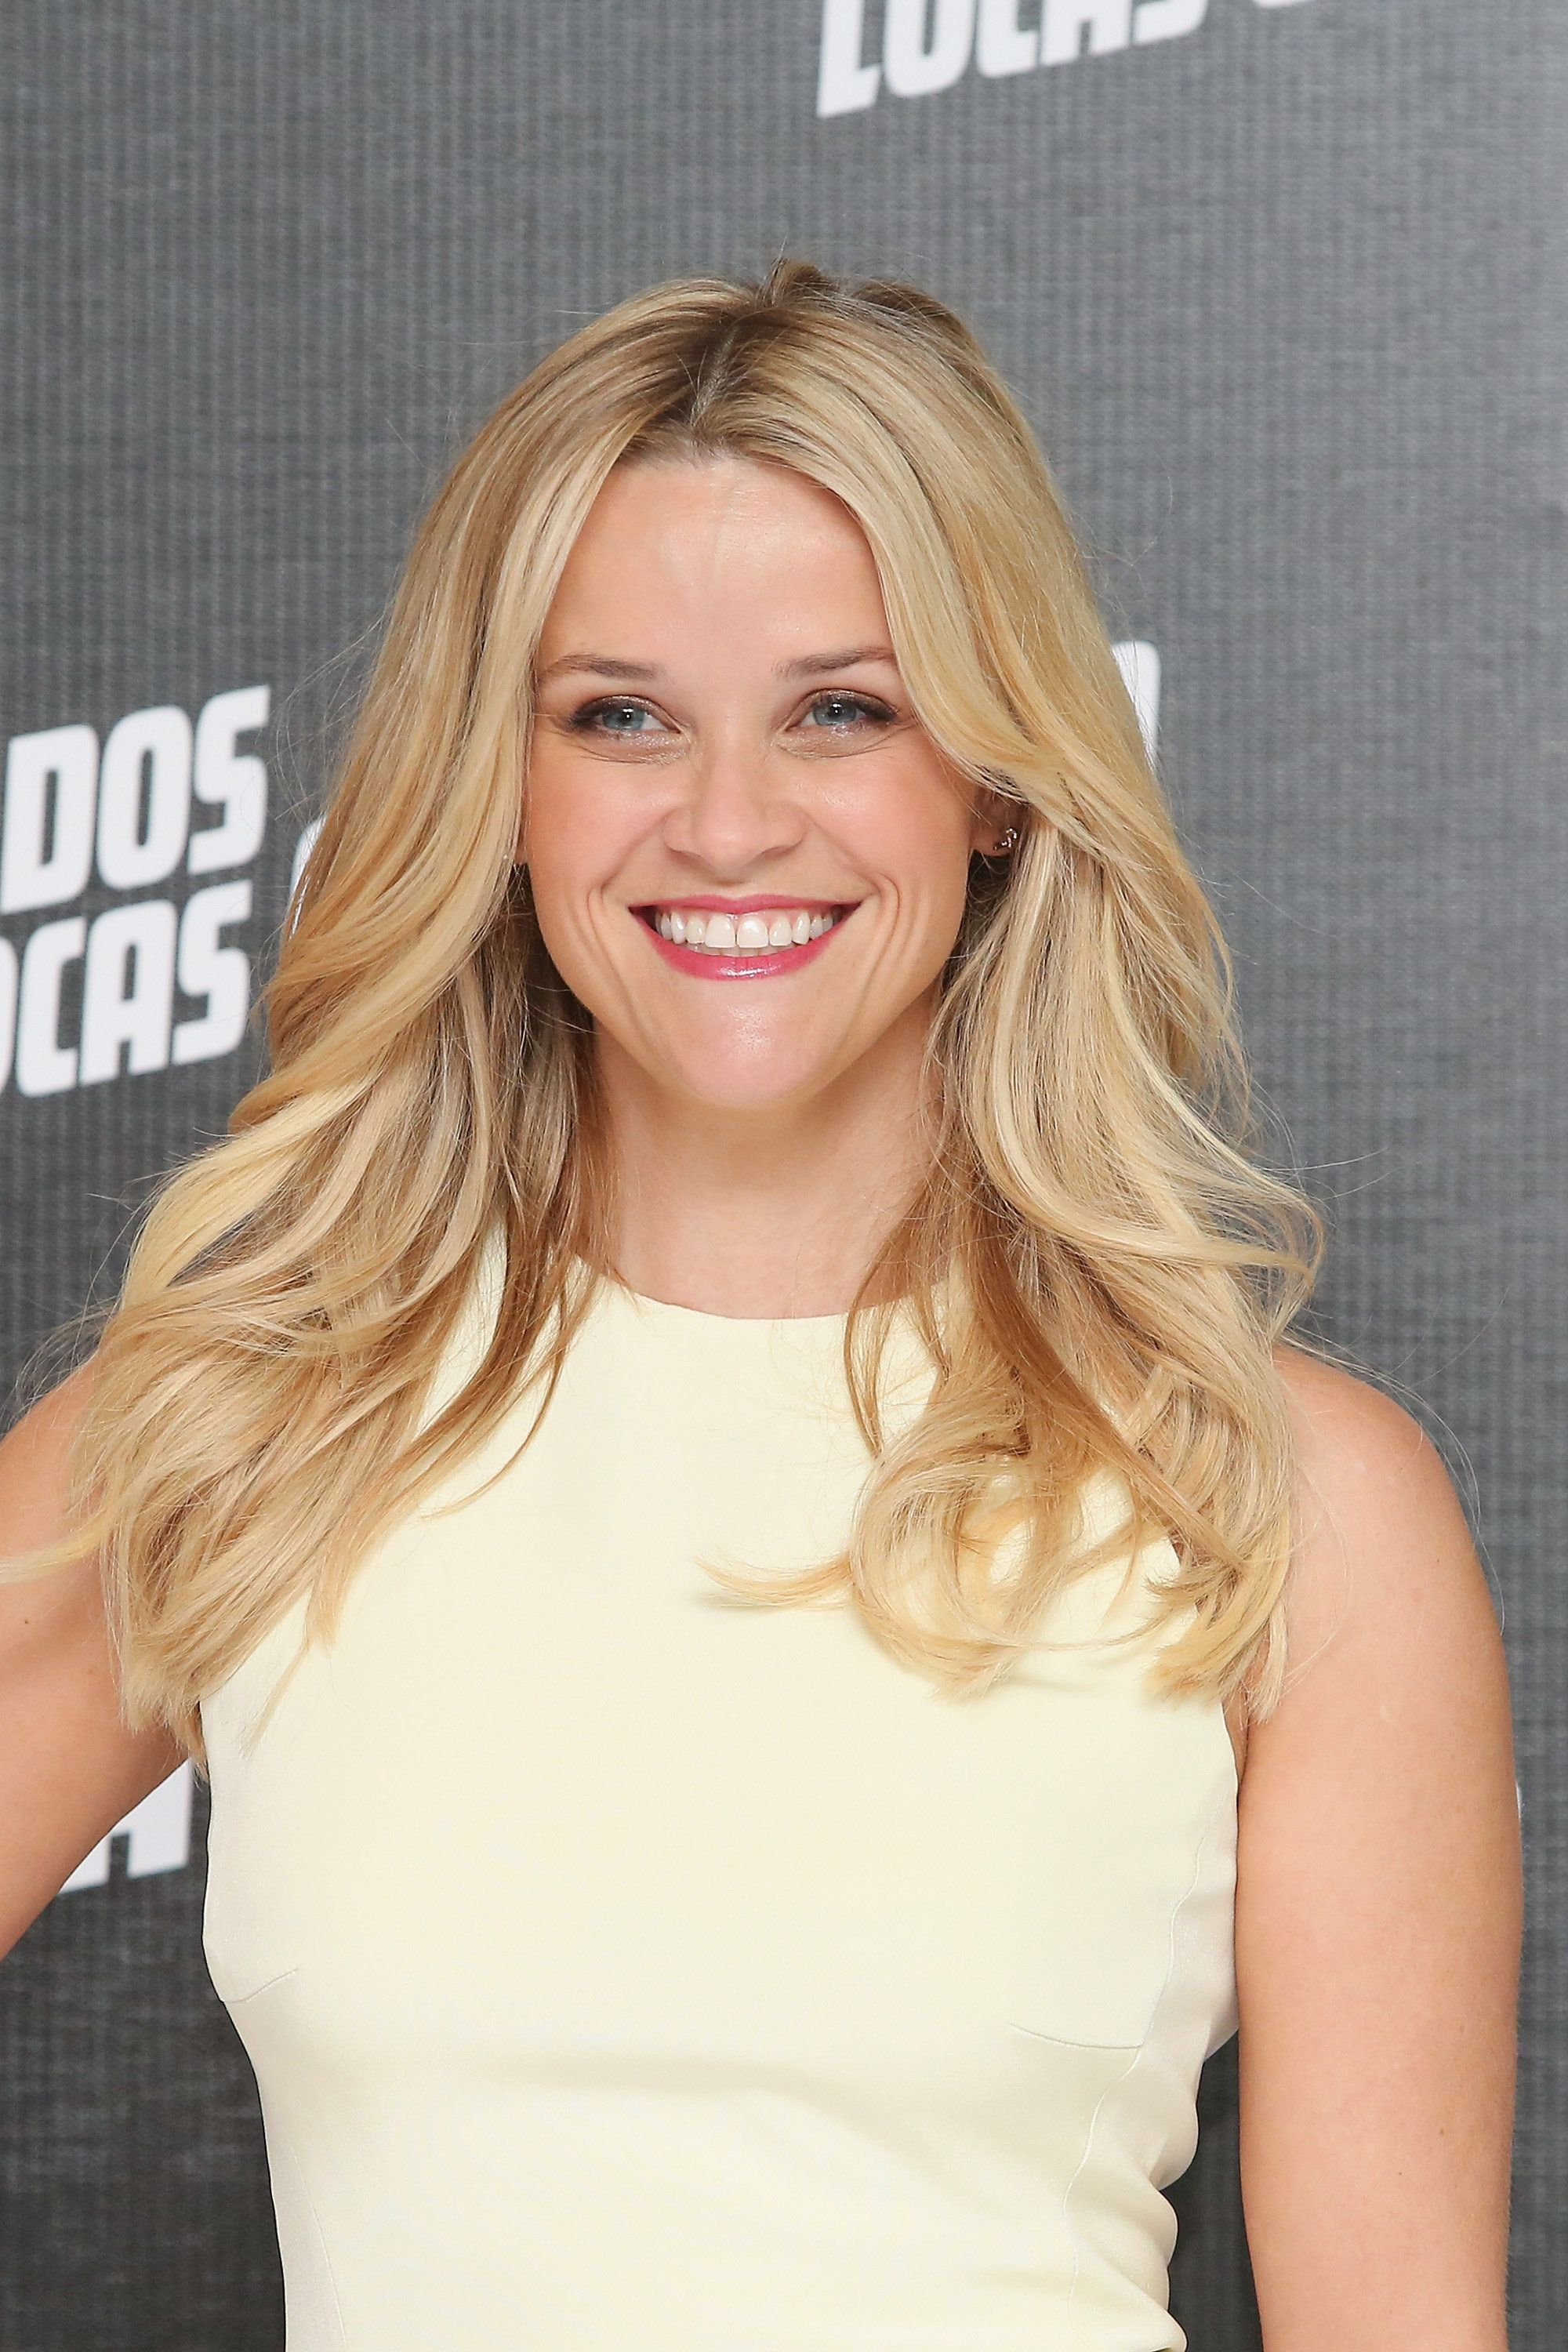 MEXICO CITY, MEXICO - JUNE 23:  Actress Reese Witherspoon attends a photocall to promote her new film 'Hot Pursuit' at St. Regis Hotel on June 23, 2015 in Mexico City, Mexico.  (Photo by Victor Chavez/WireImage)